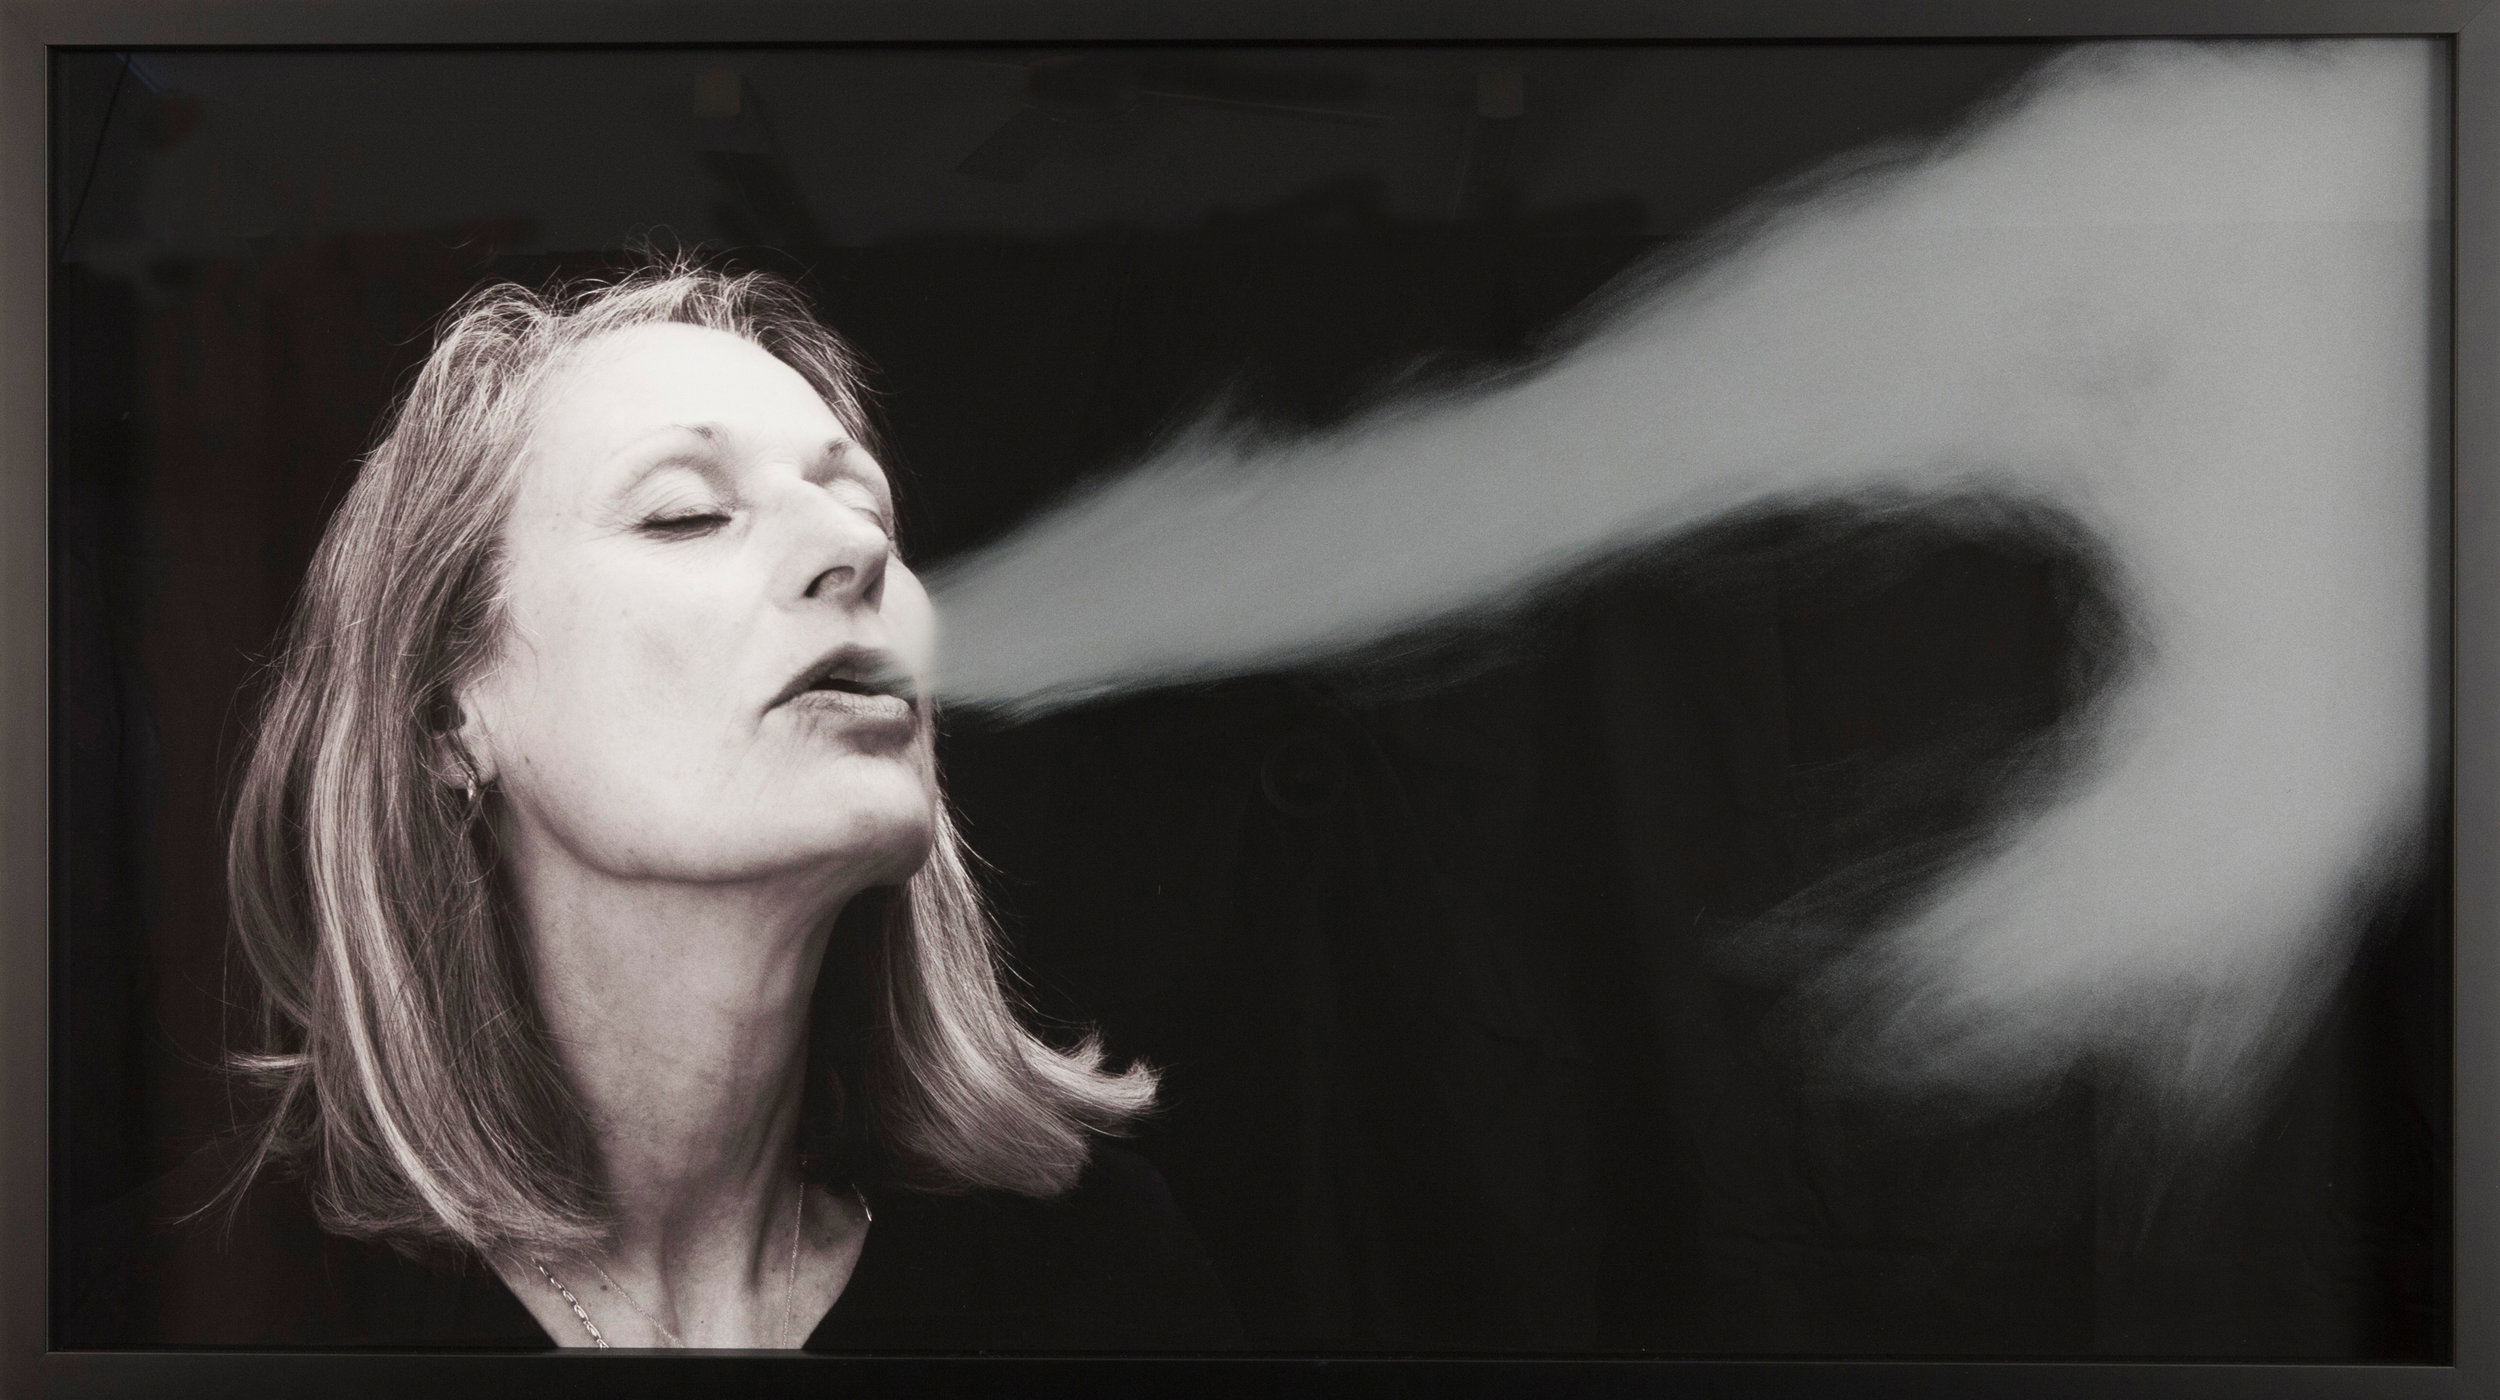 Julie Rrap,  Breath stream , 2018, pigment inkjet print, hand-ground glass, 66 x 116cm; image courtesy the artist, Arc One Gallery, Melbourne, and Roslyn Oxley9 Gallery, Sydney